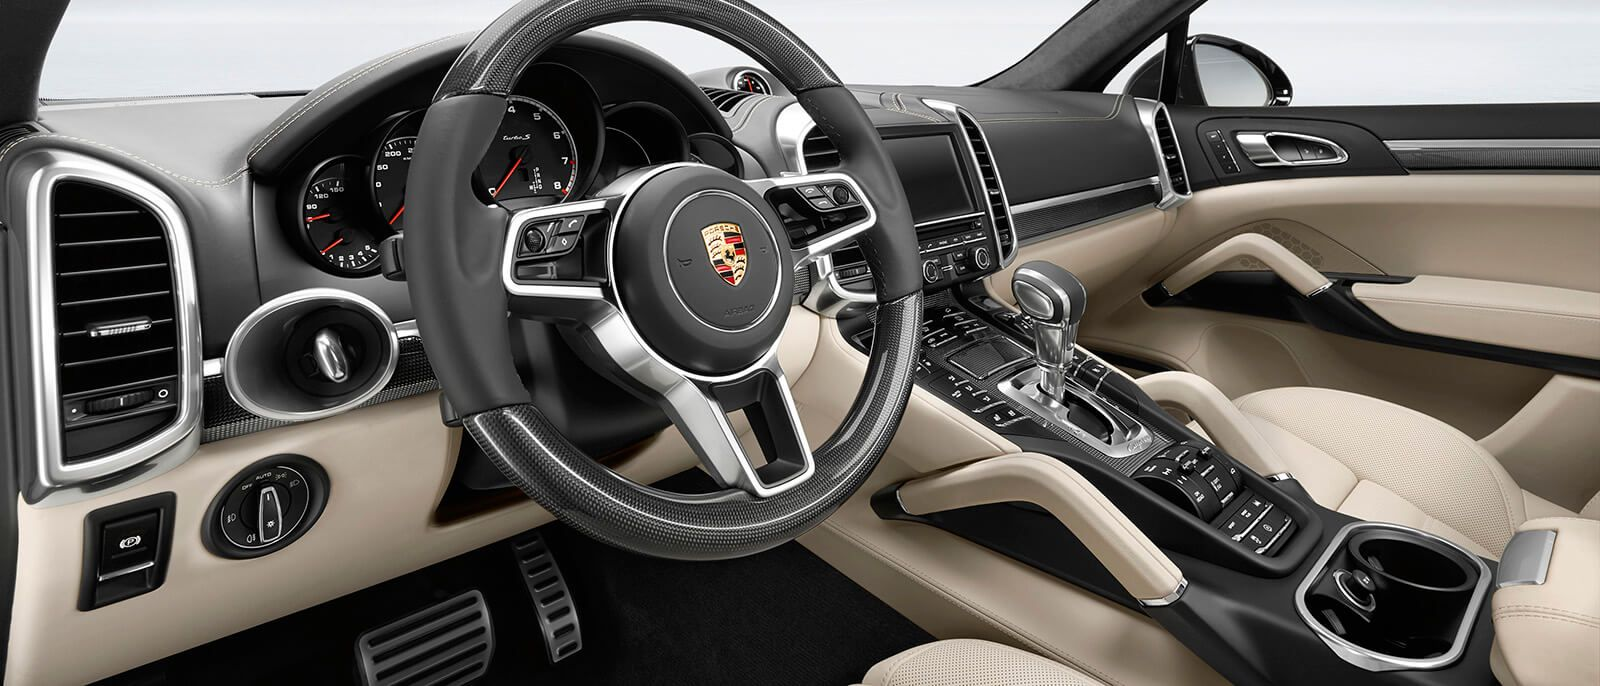 Image result for Porsche Cayenne Turbo interior hd photos